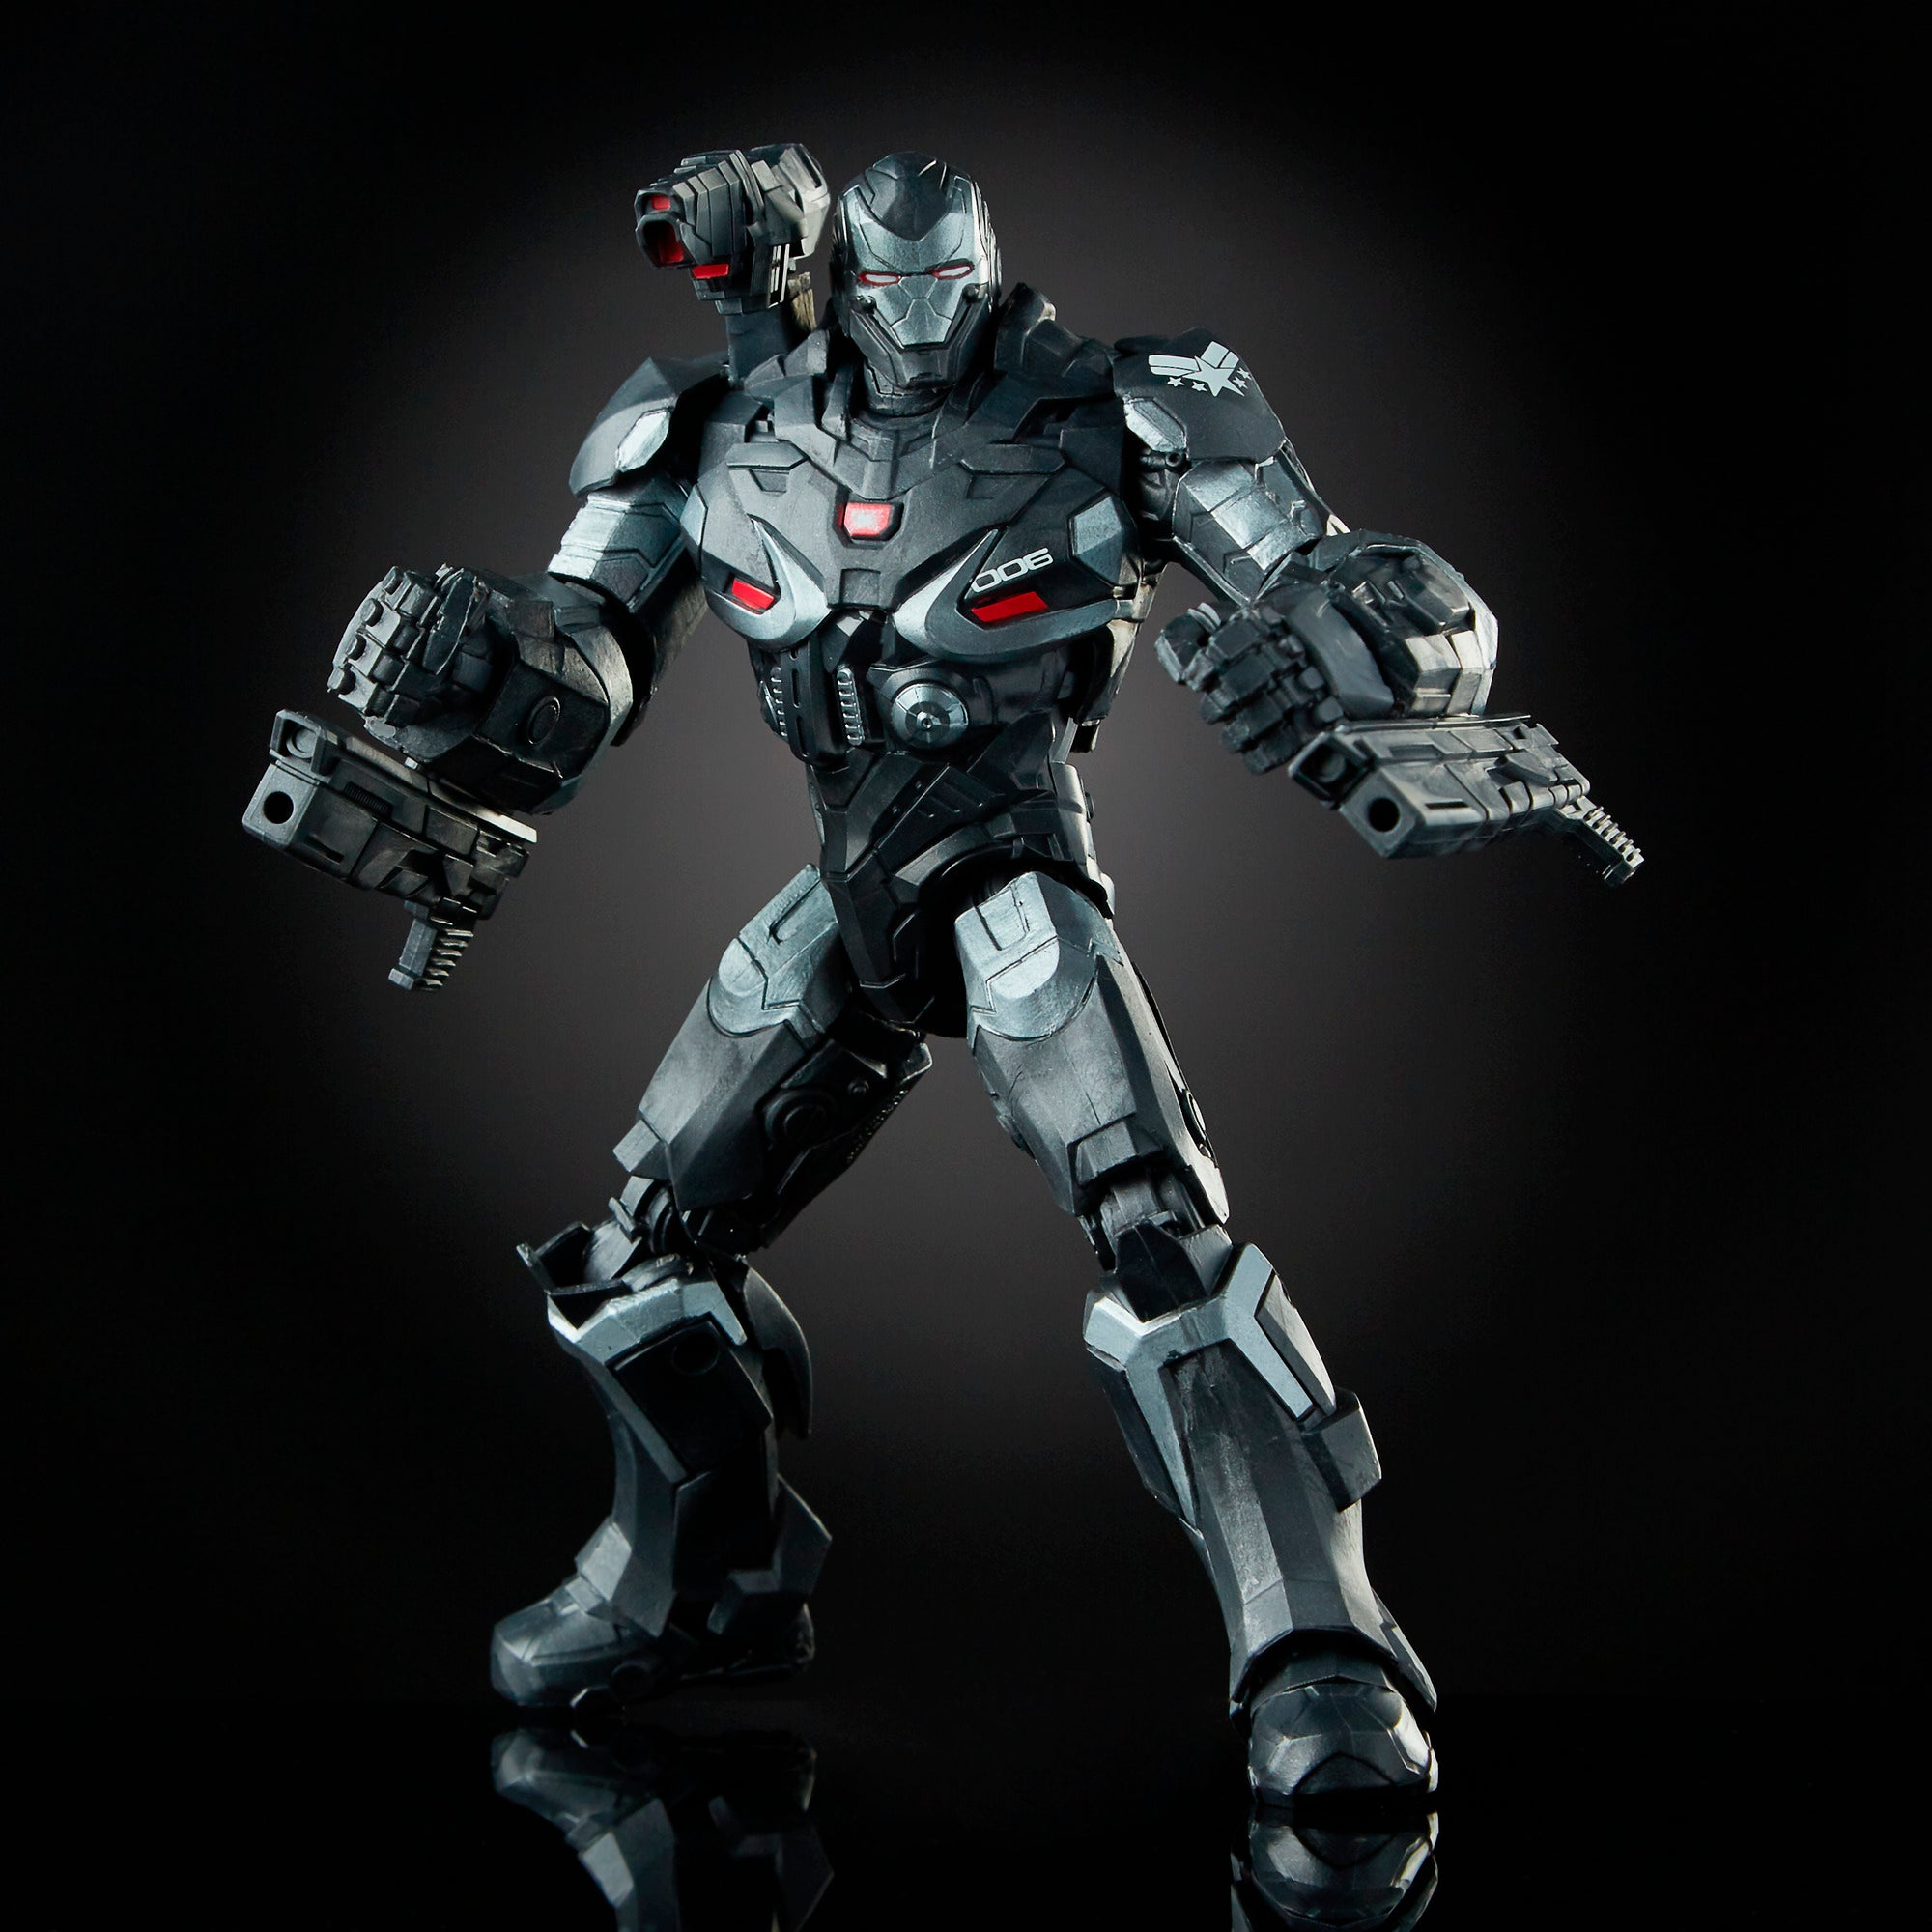 Marvel Legends Series Avengers: Endgame War Machine Figure